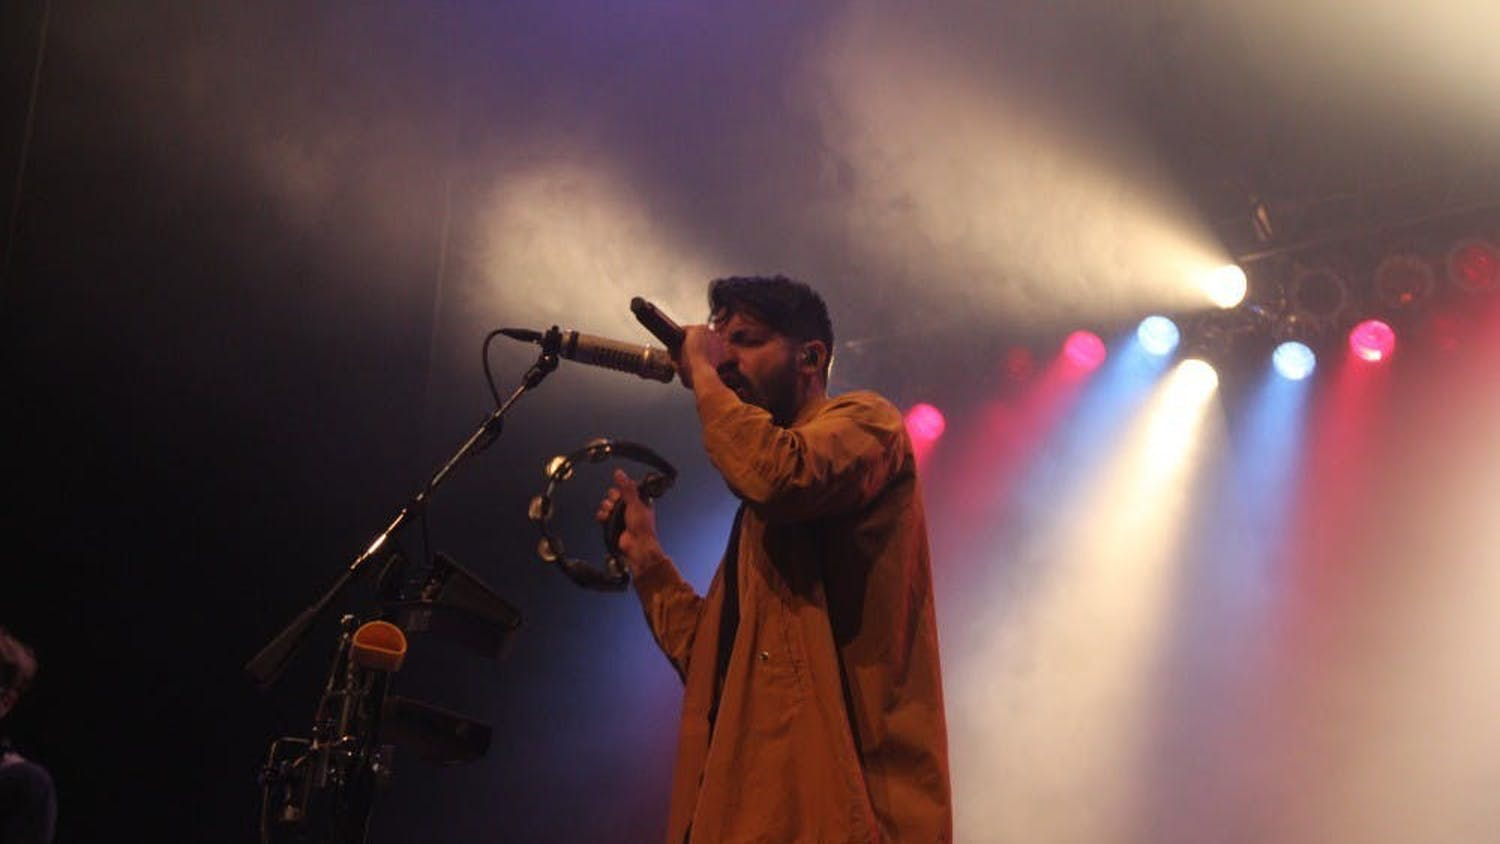 Sameer Gadhia, frontman of Young the Giant, played a tambourine during Fall Fest in 2019.